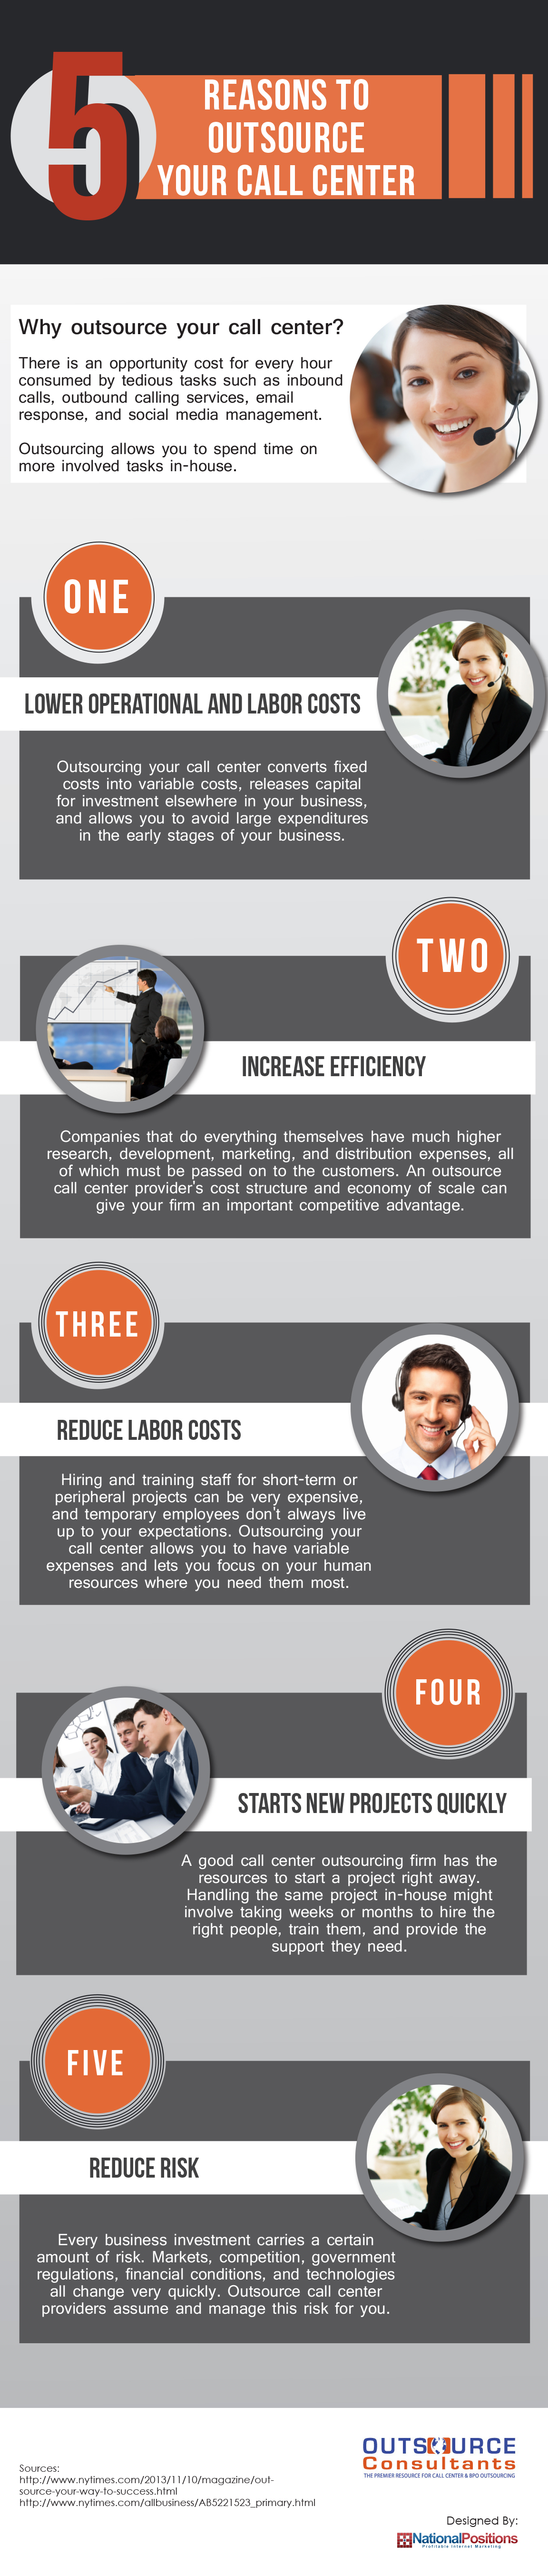 Why Outsource Your Call Center?